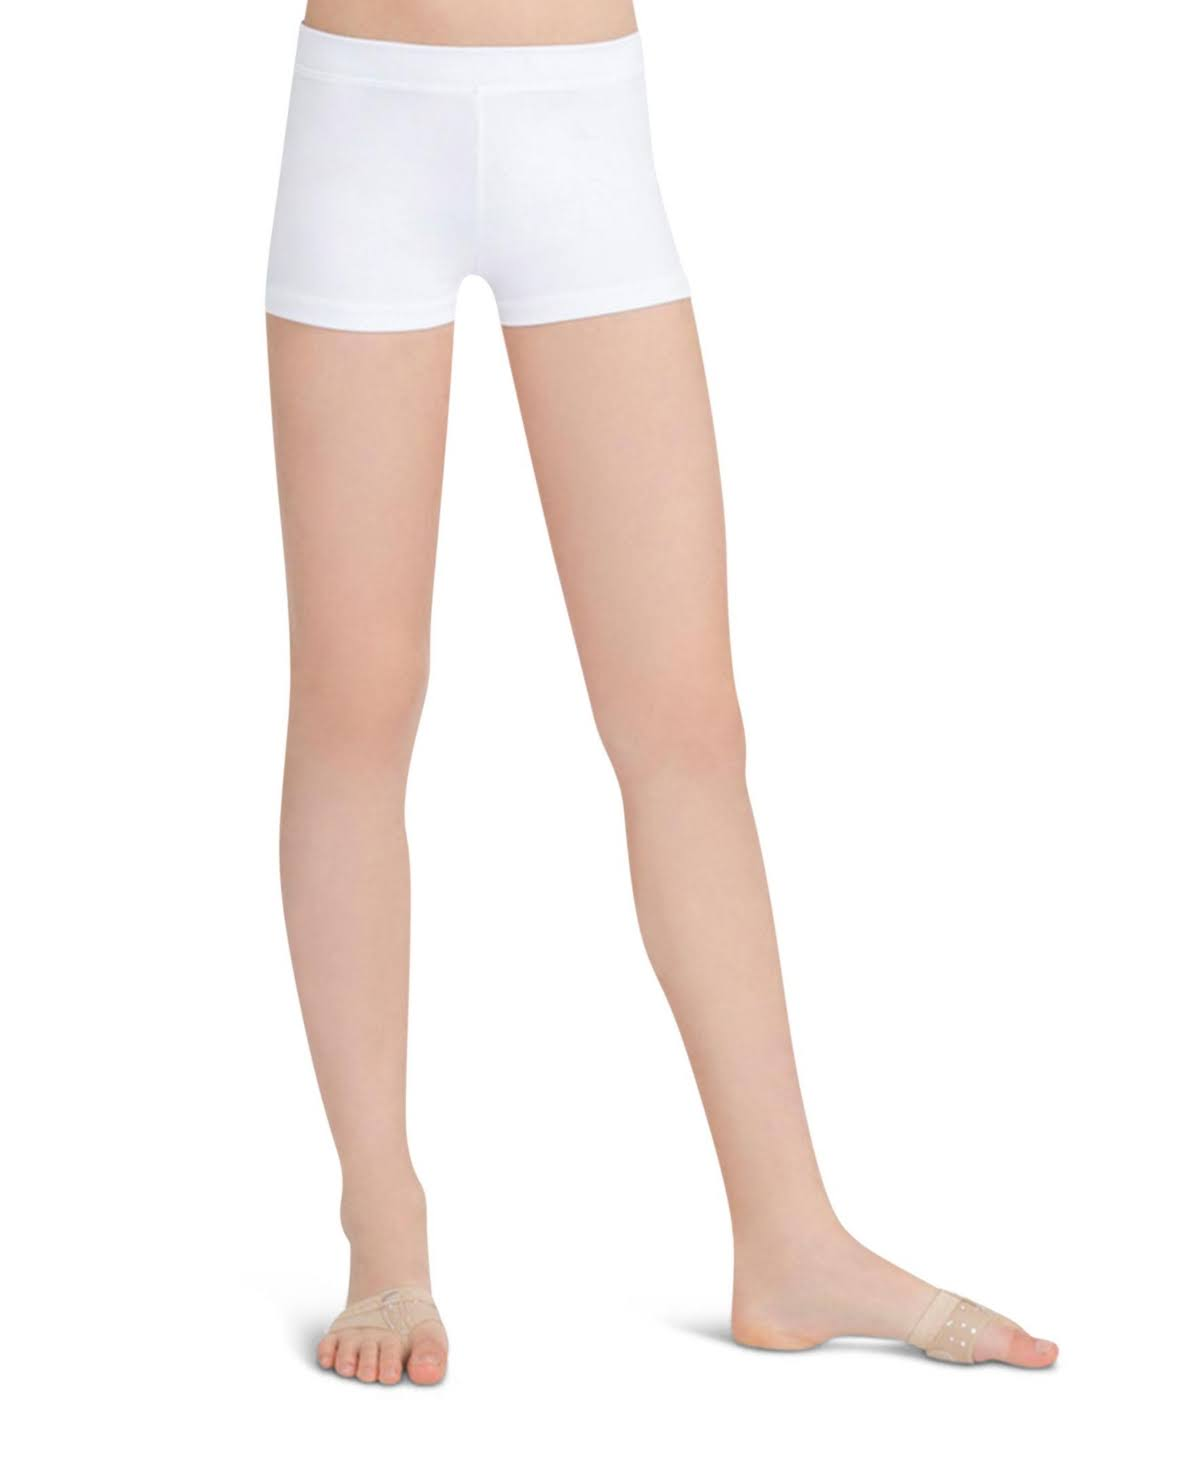 Capezio Girls Boy Cut Low Rise Short - White, Large